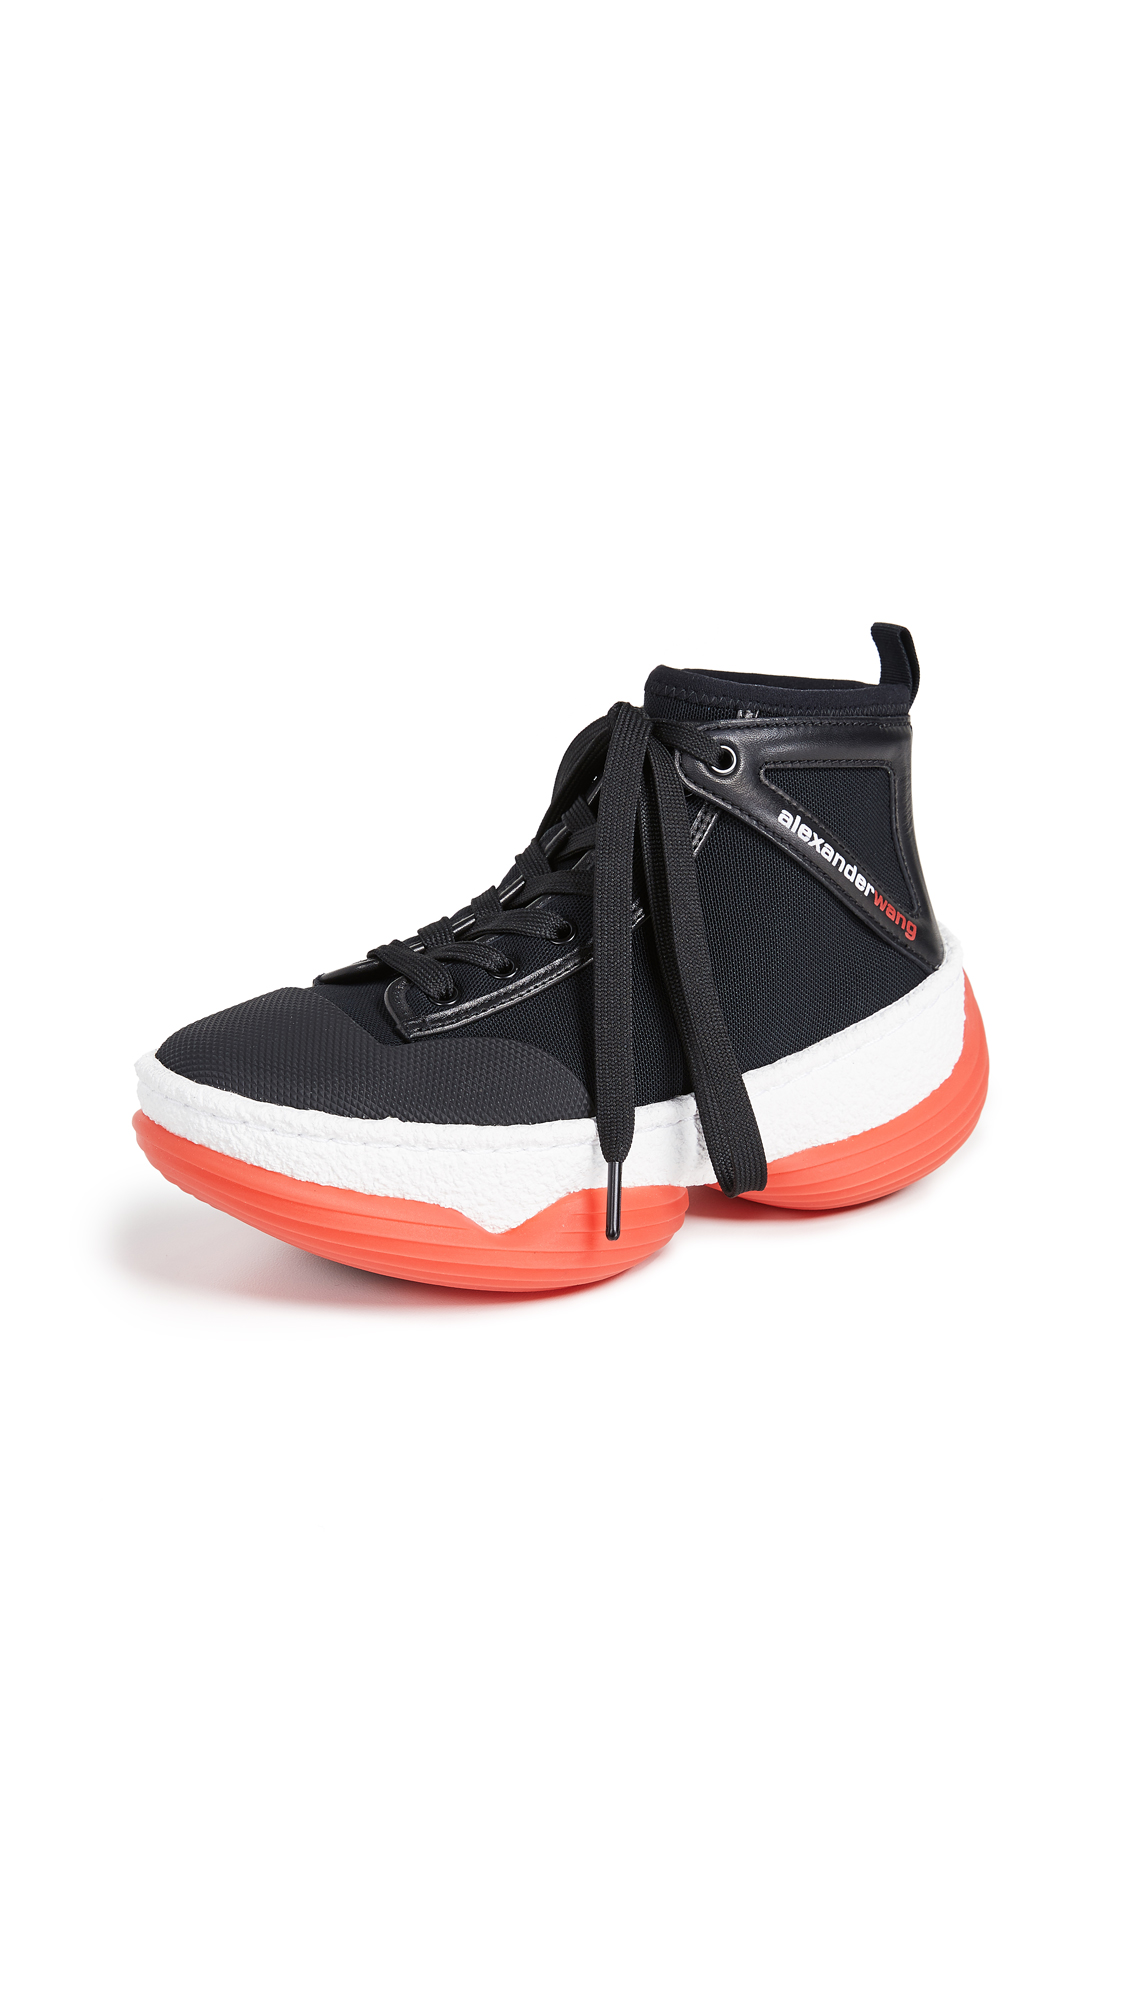 Alexander Wang A1 Sneakers - Black